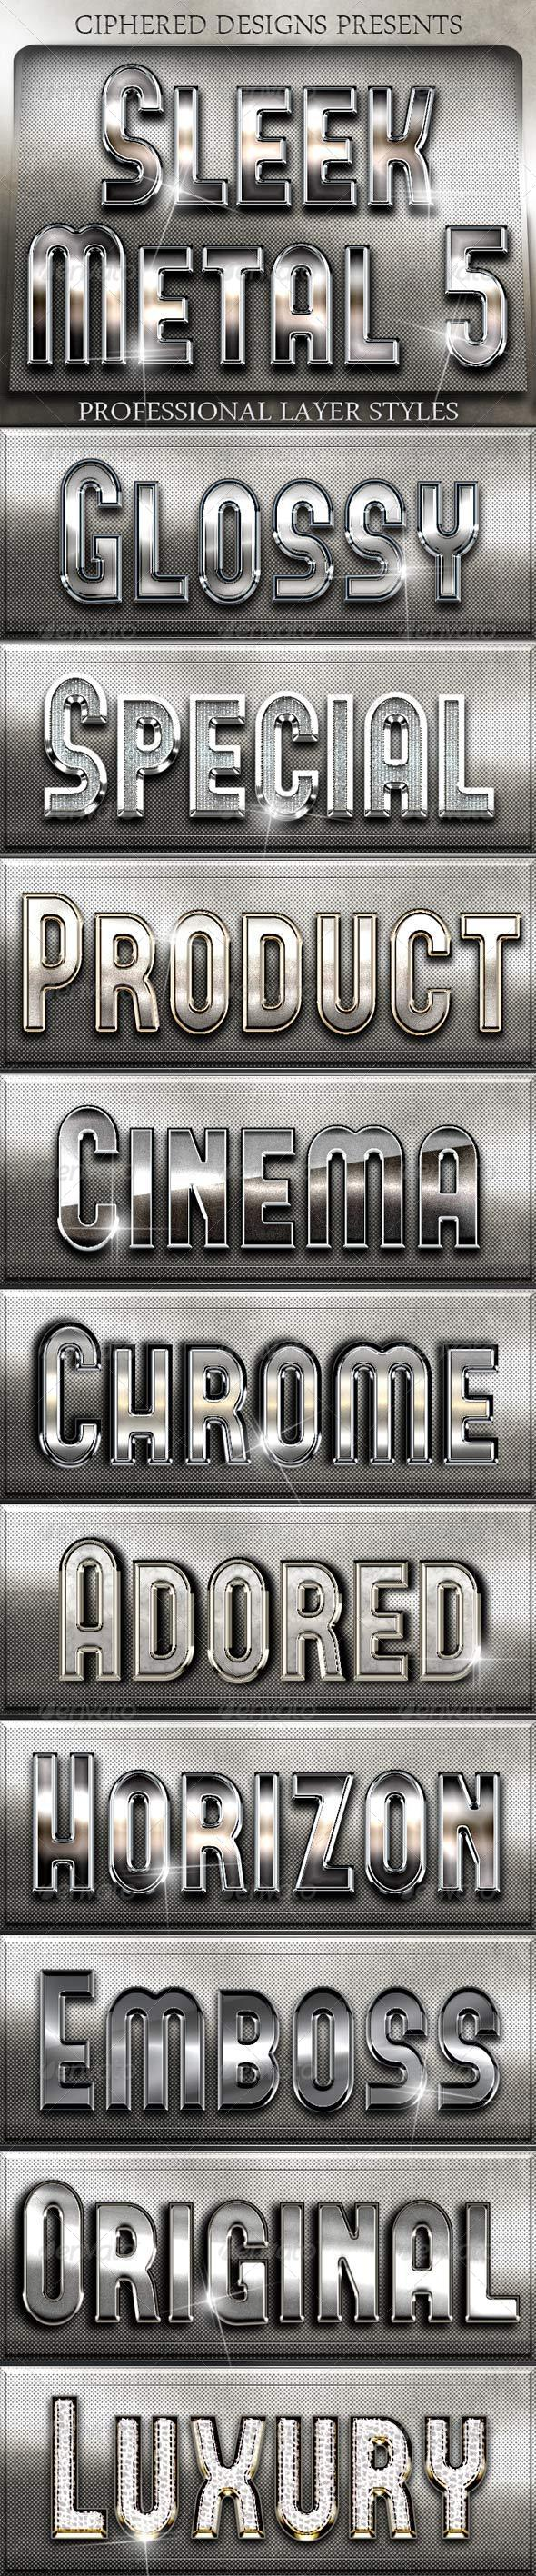 GraphicRiver Sleek Metal 5 Professional Layer Styles 5088784